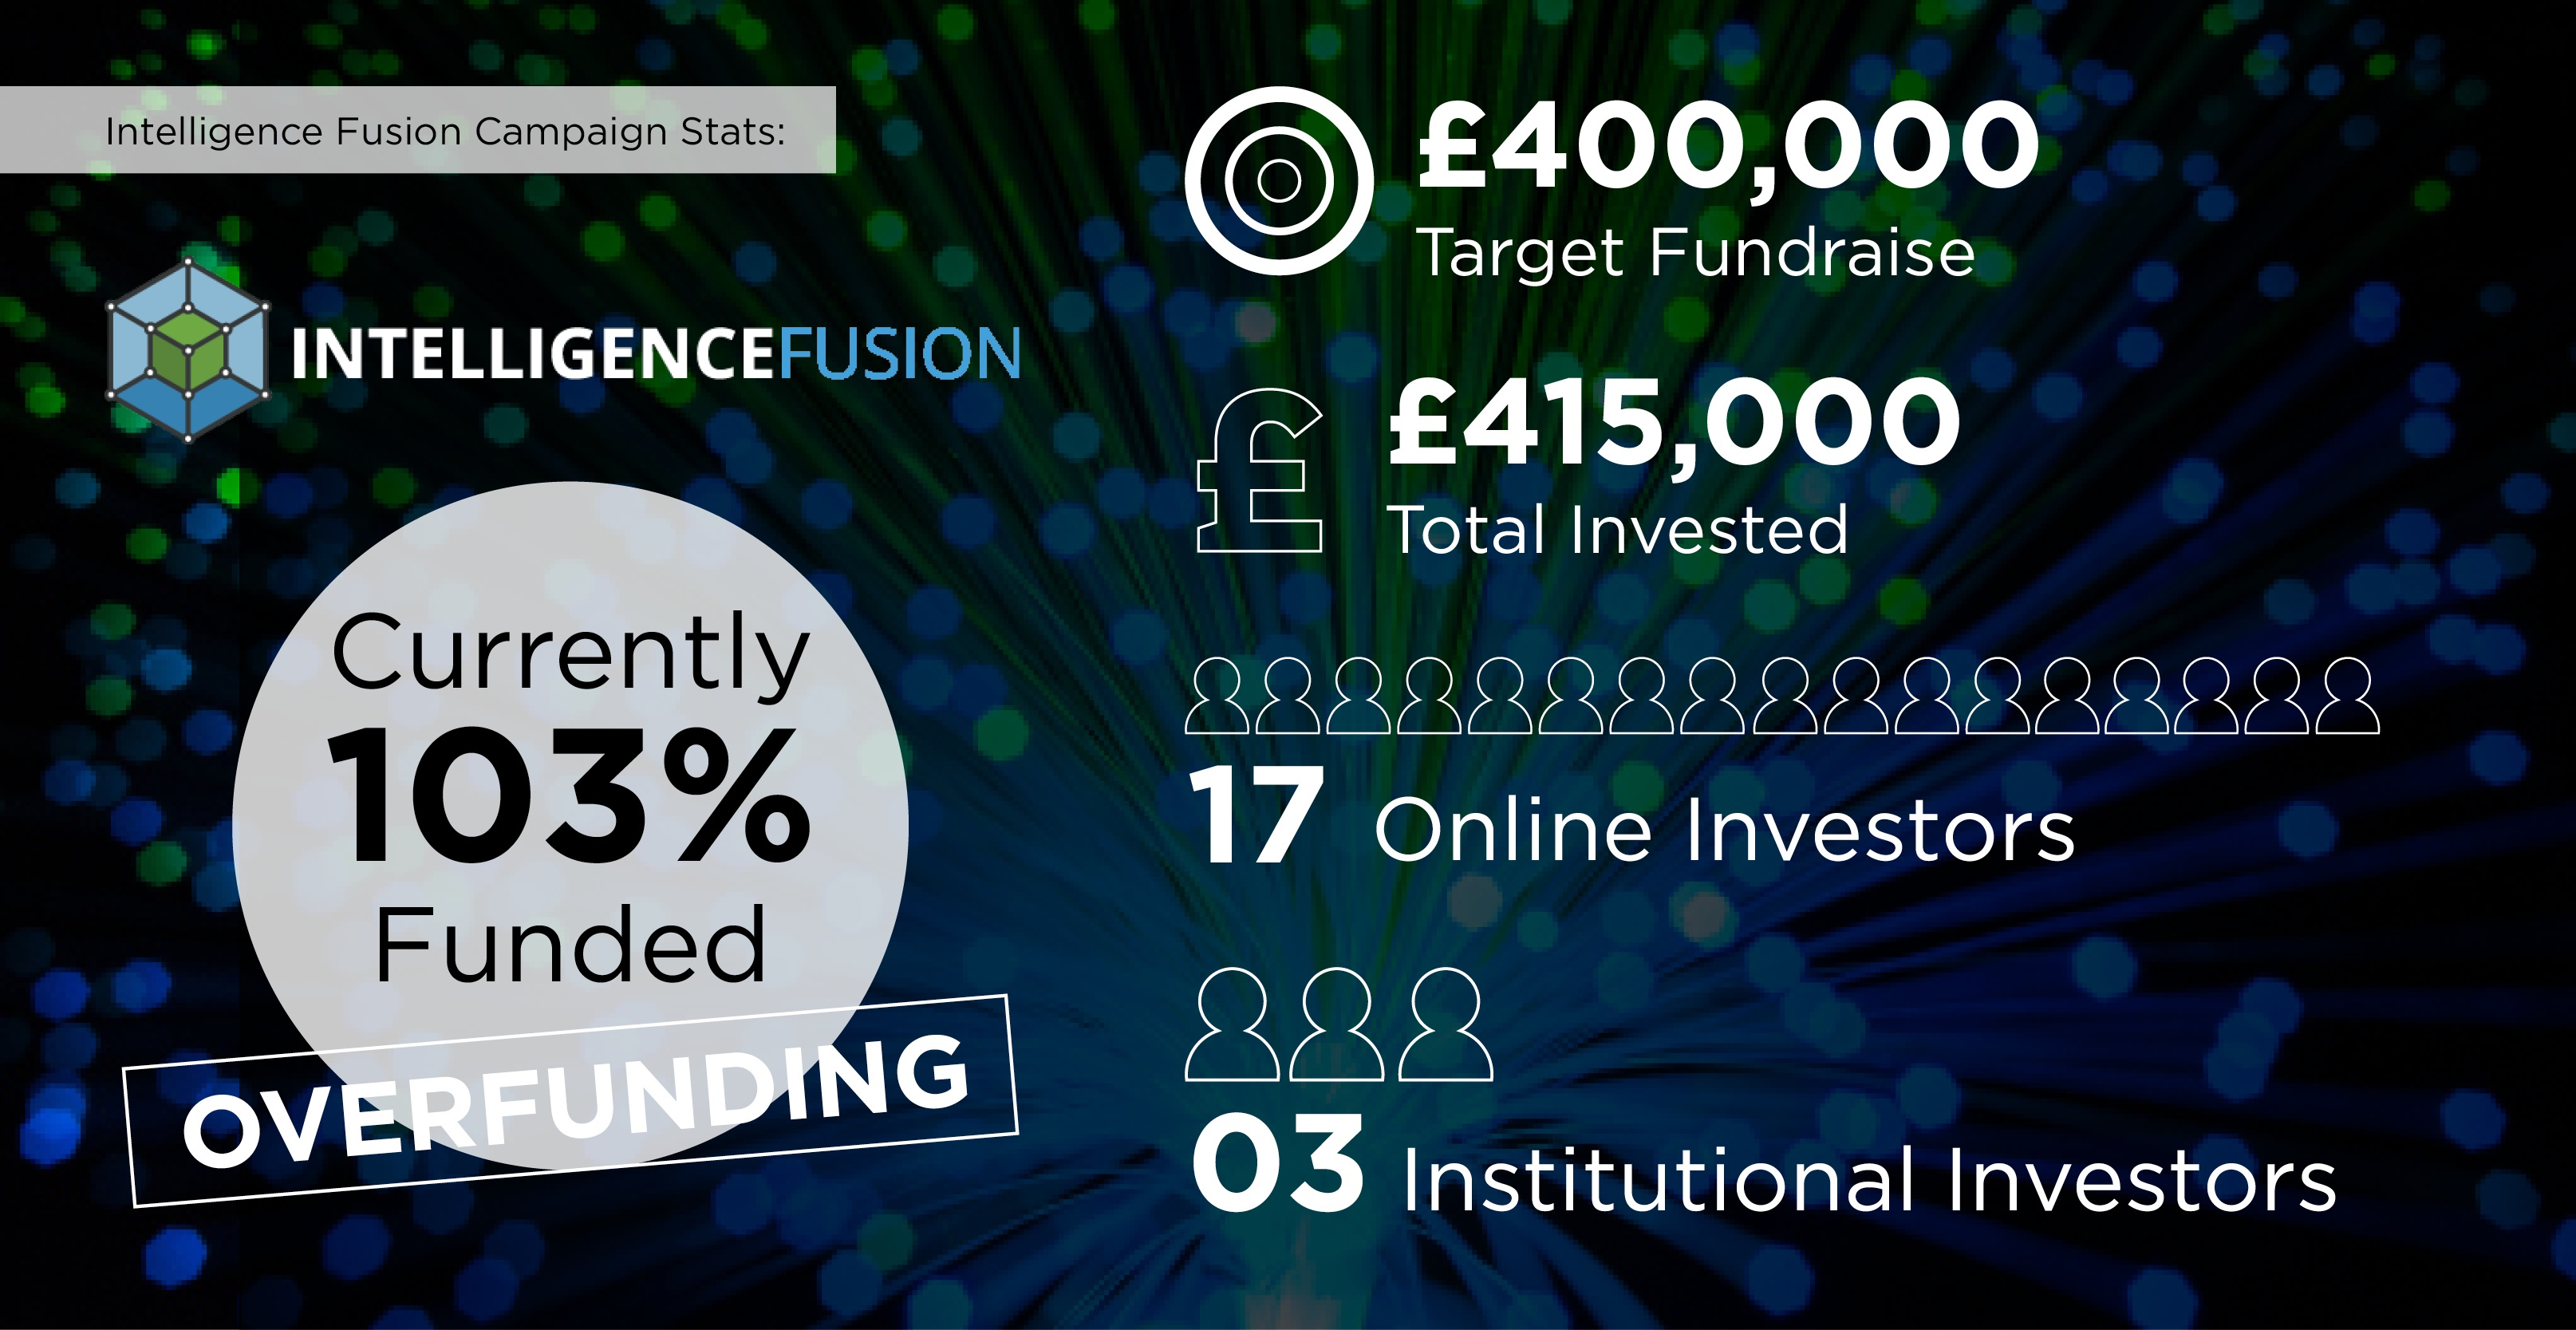 Intelligence Fusion's EIS investment opportunity is overfunding!